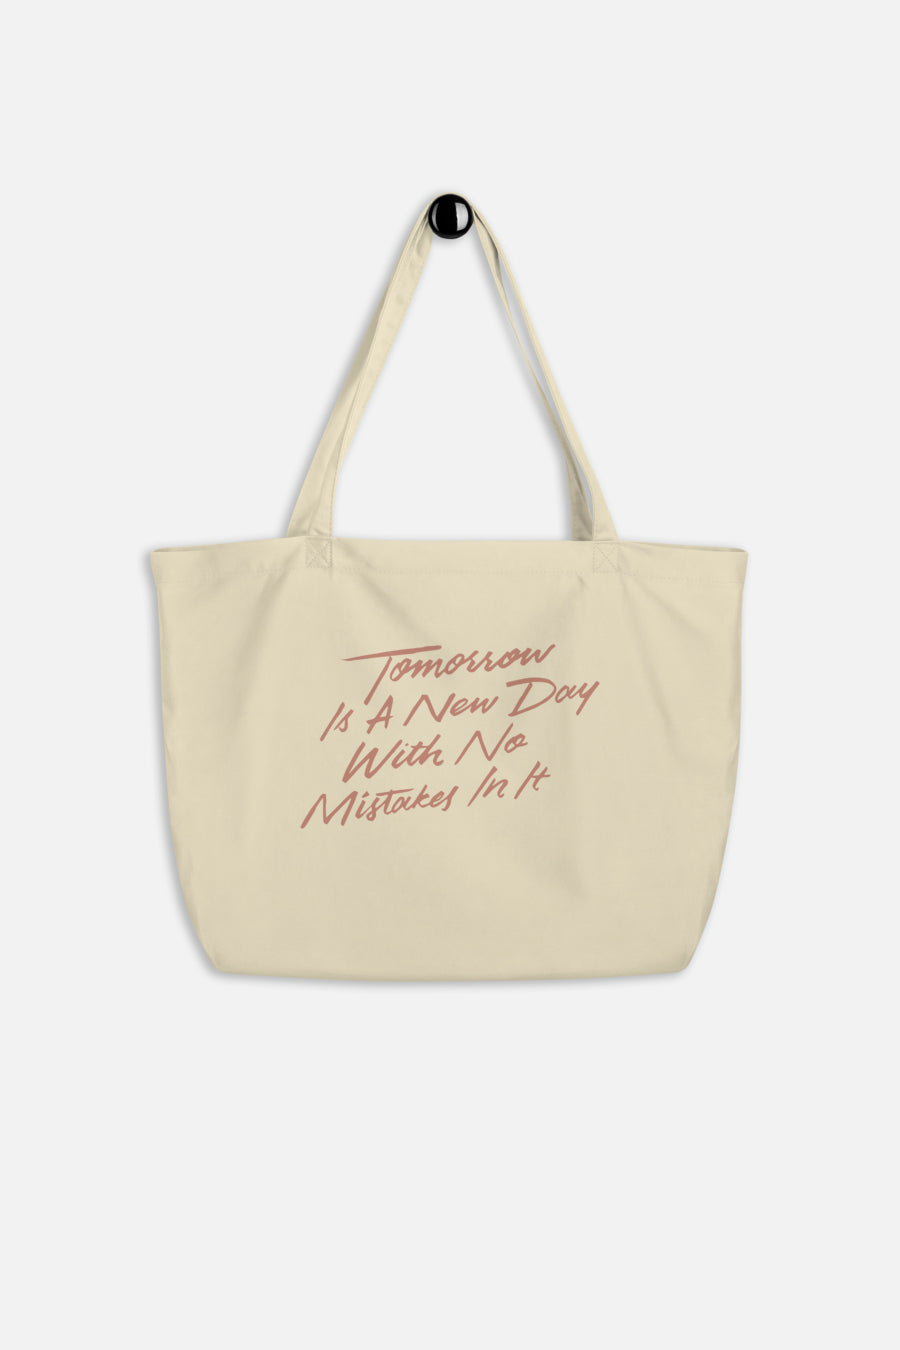 Tomorrow is a New Day Large Eco Tote Bag | Anne of Green Gables